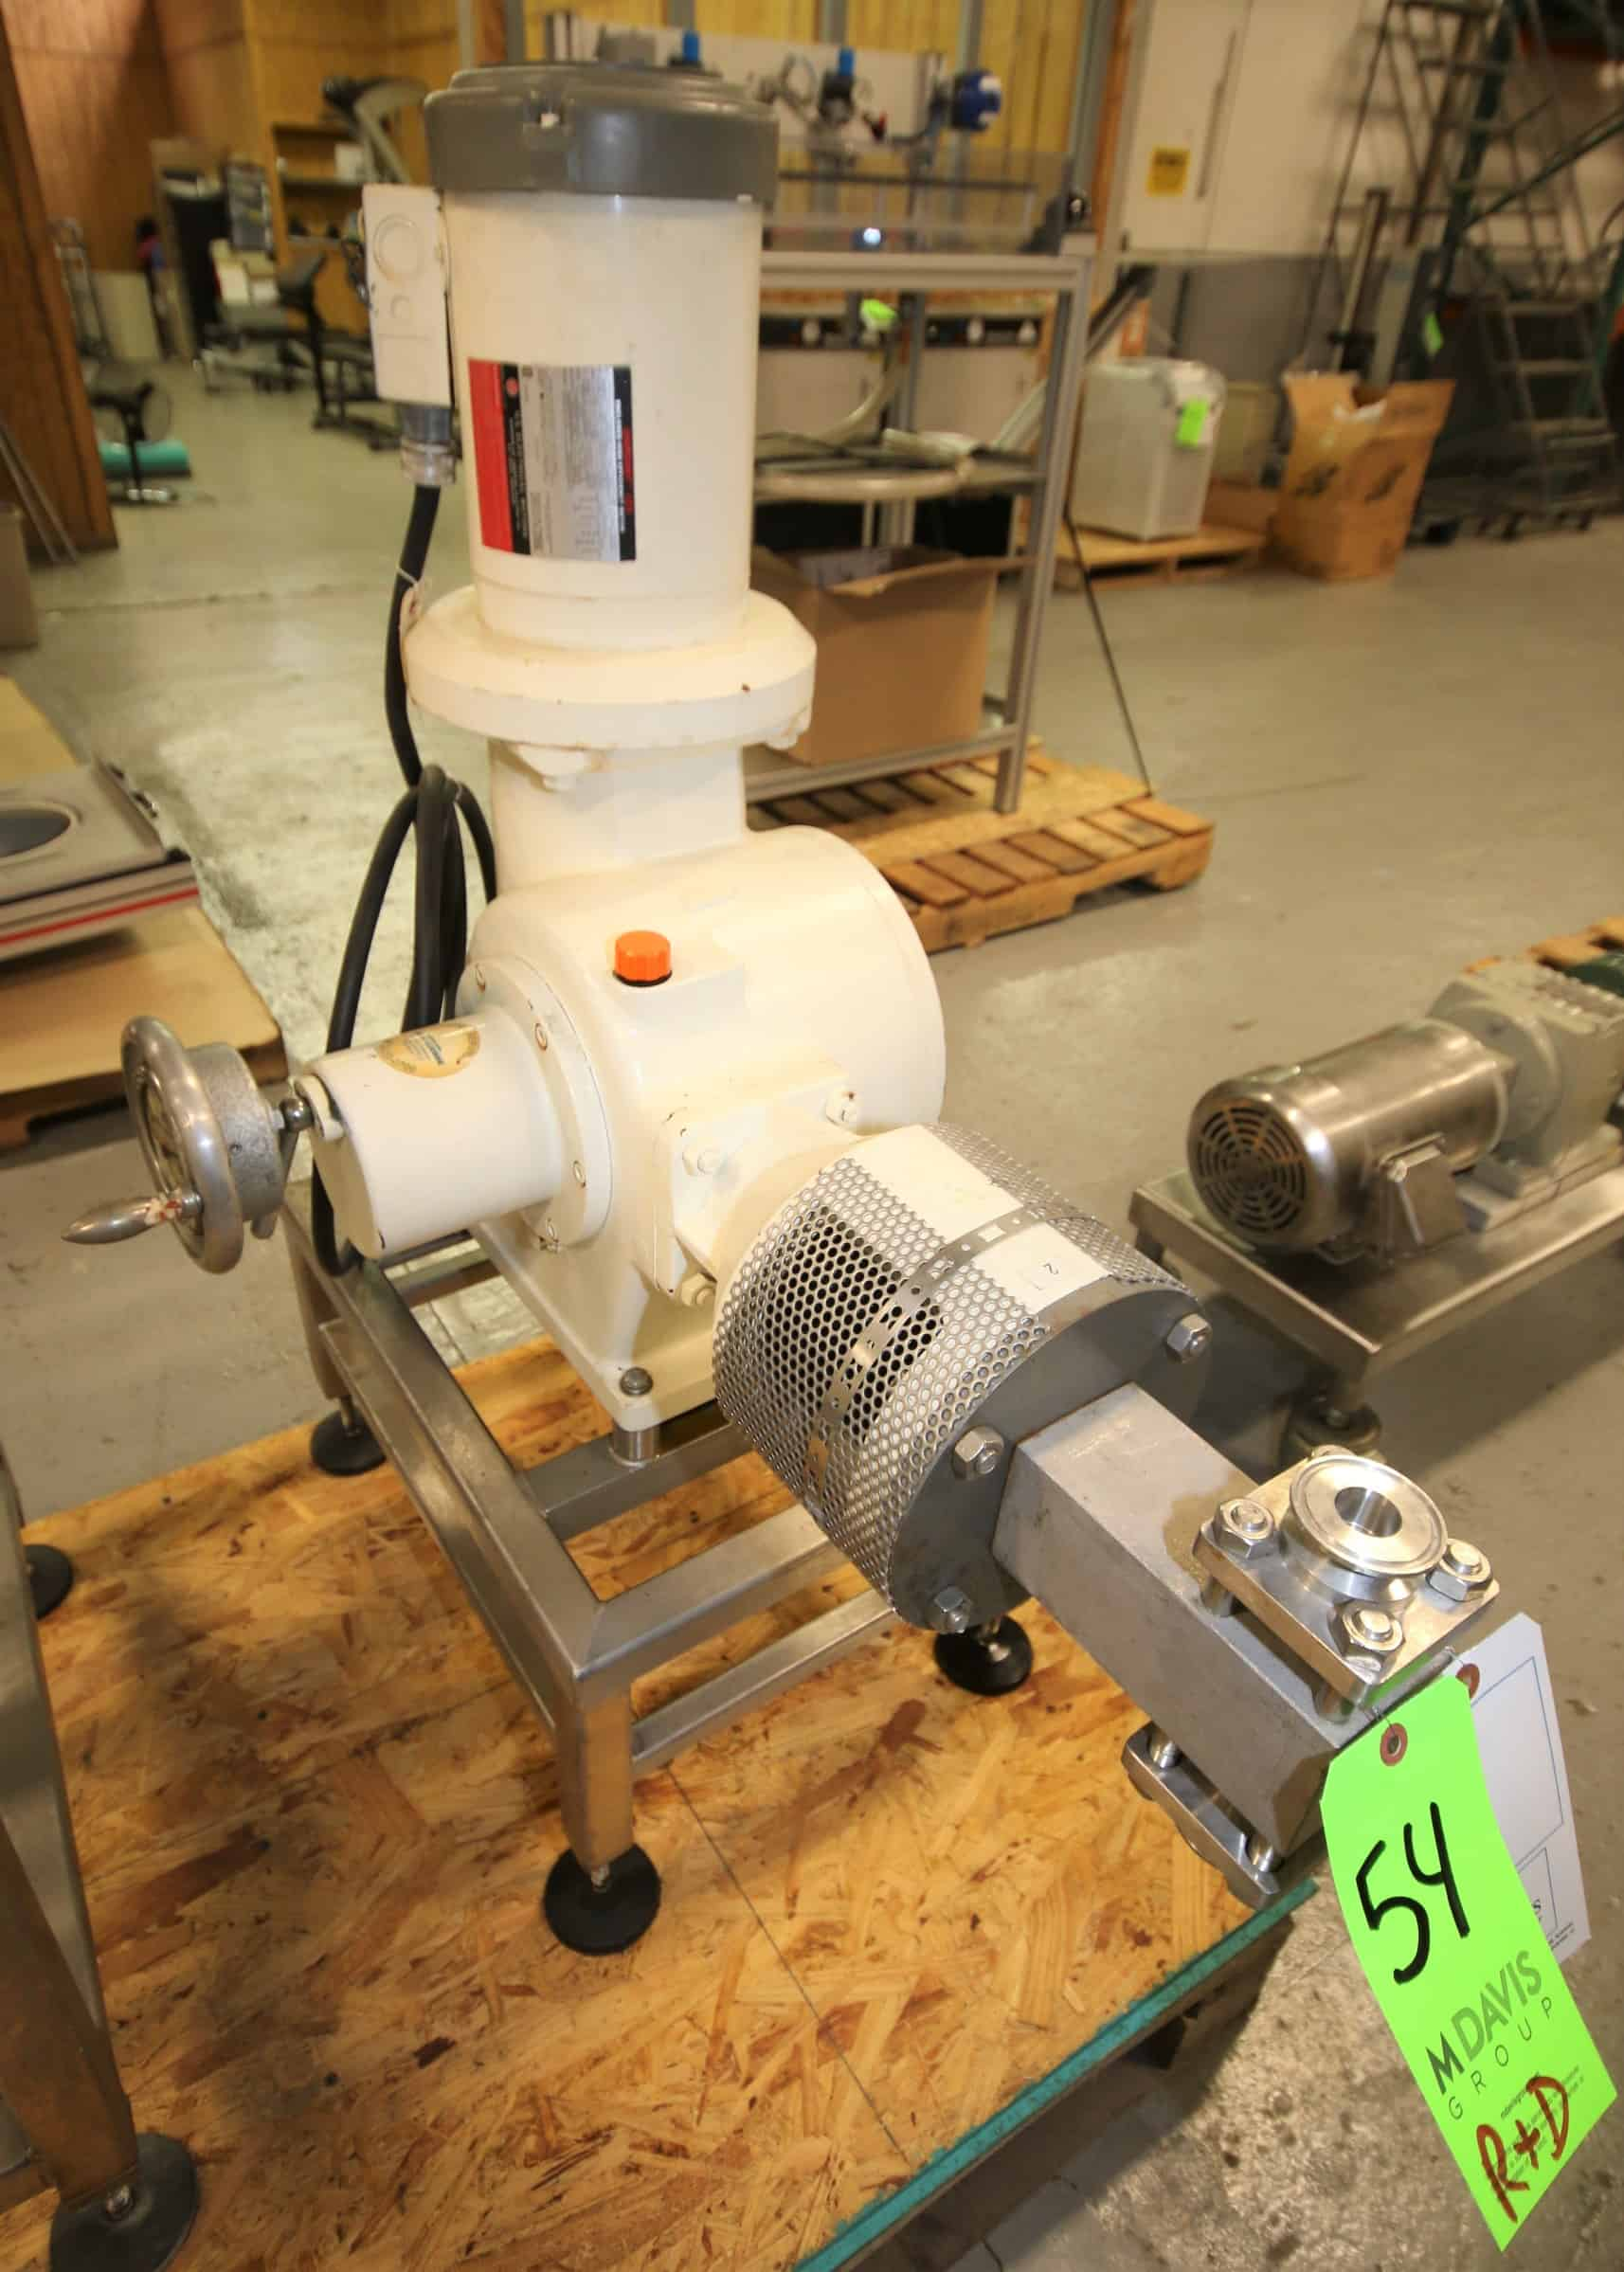 "Bran - Lubbe Metering Pump, Type N-D431, SN A11420, with 1.5"" Clamp Type Connections, US Motors 2 hp / 1725 rpm Drive Motor, 230/460V 3 Phase, Mounted on S/S Frame"